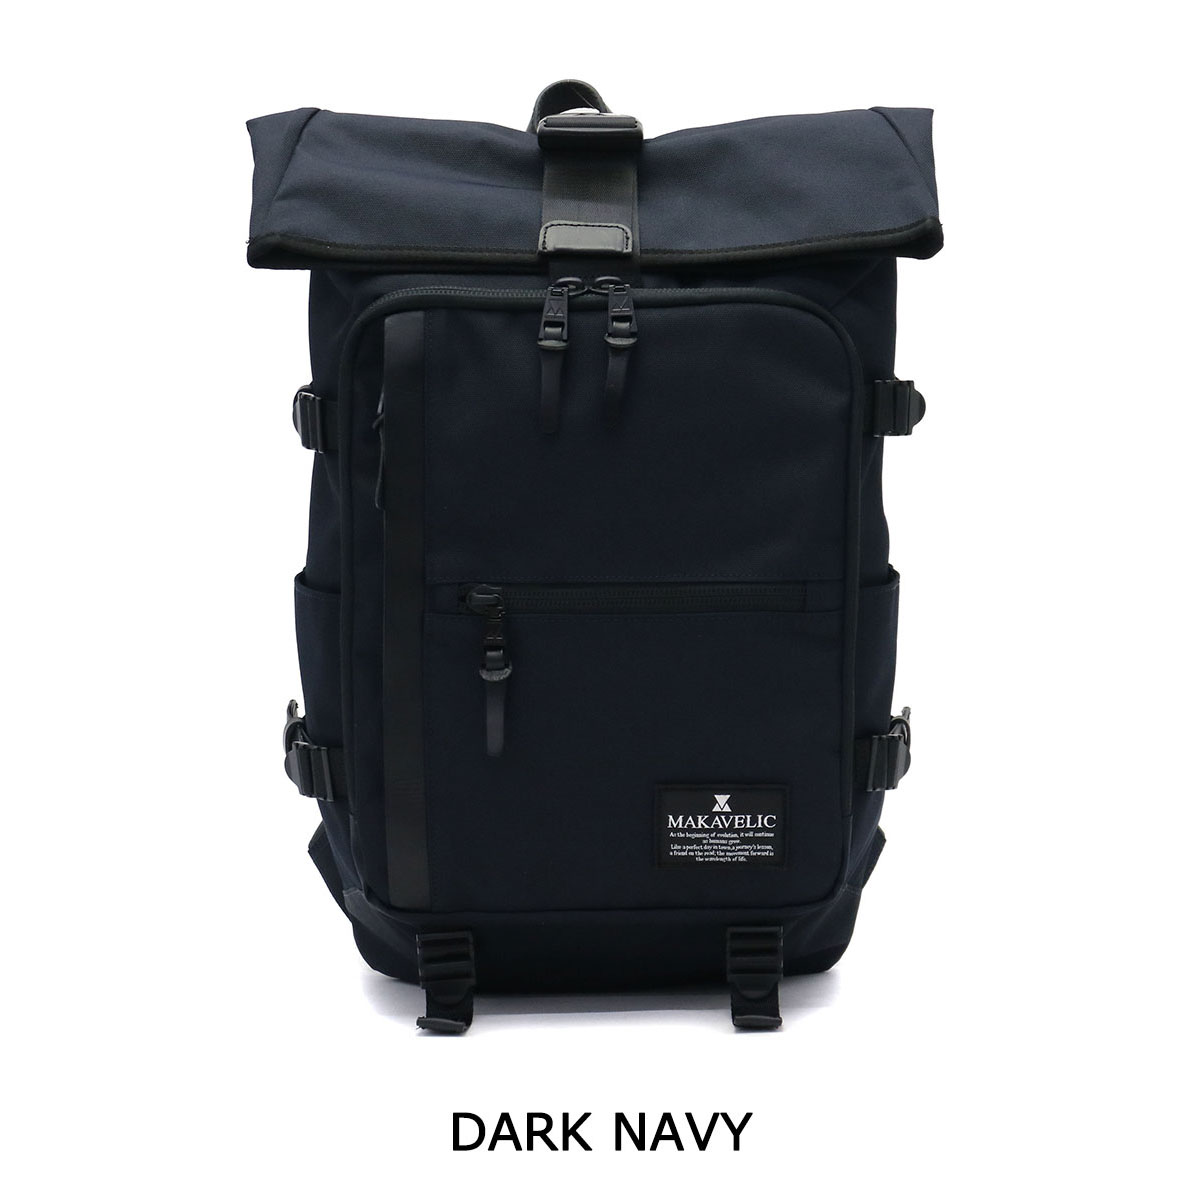 Galleria Rolltop LuggageMakavelic Backpack Chase Bag e2WH9IbDEY